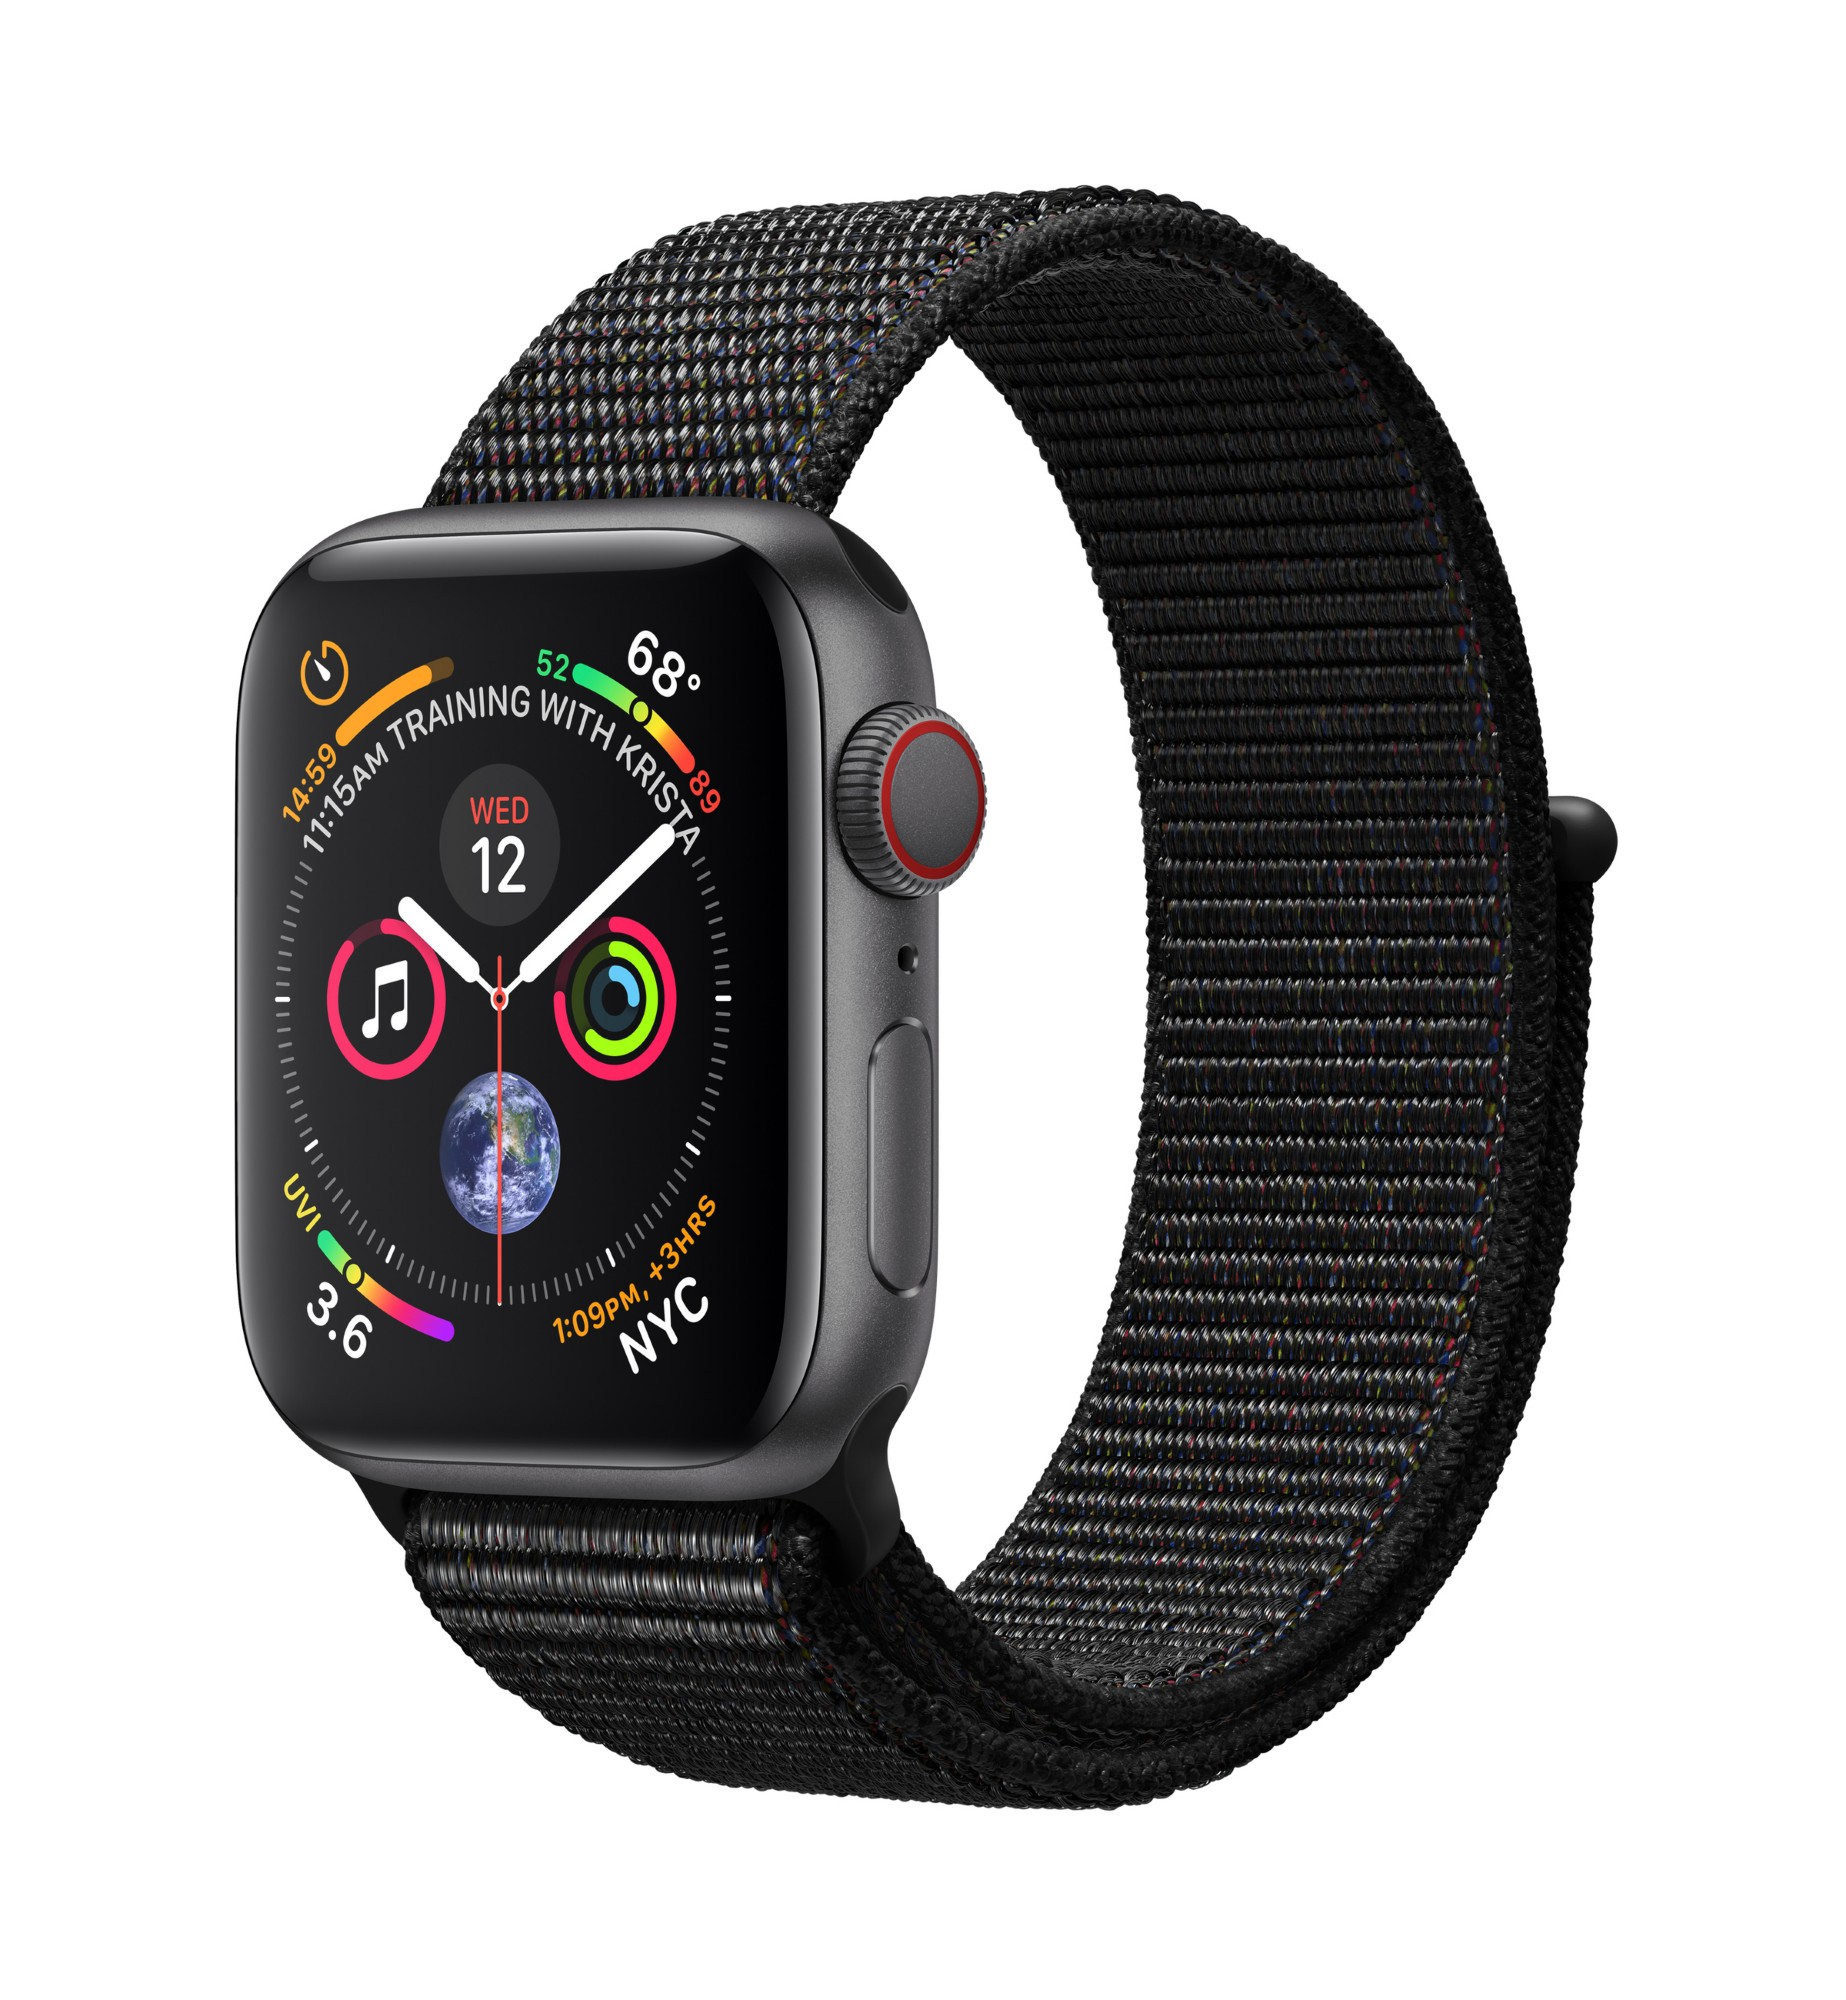 APPLE MTVF2B/A WATCH SERIES 4 OLED GREY GPS (SATELLITE) SMARTWATCH